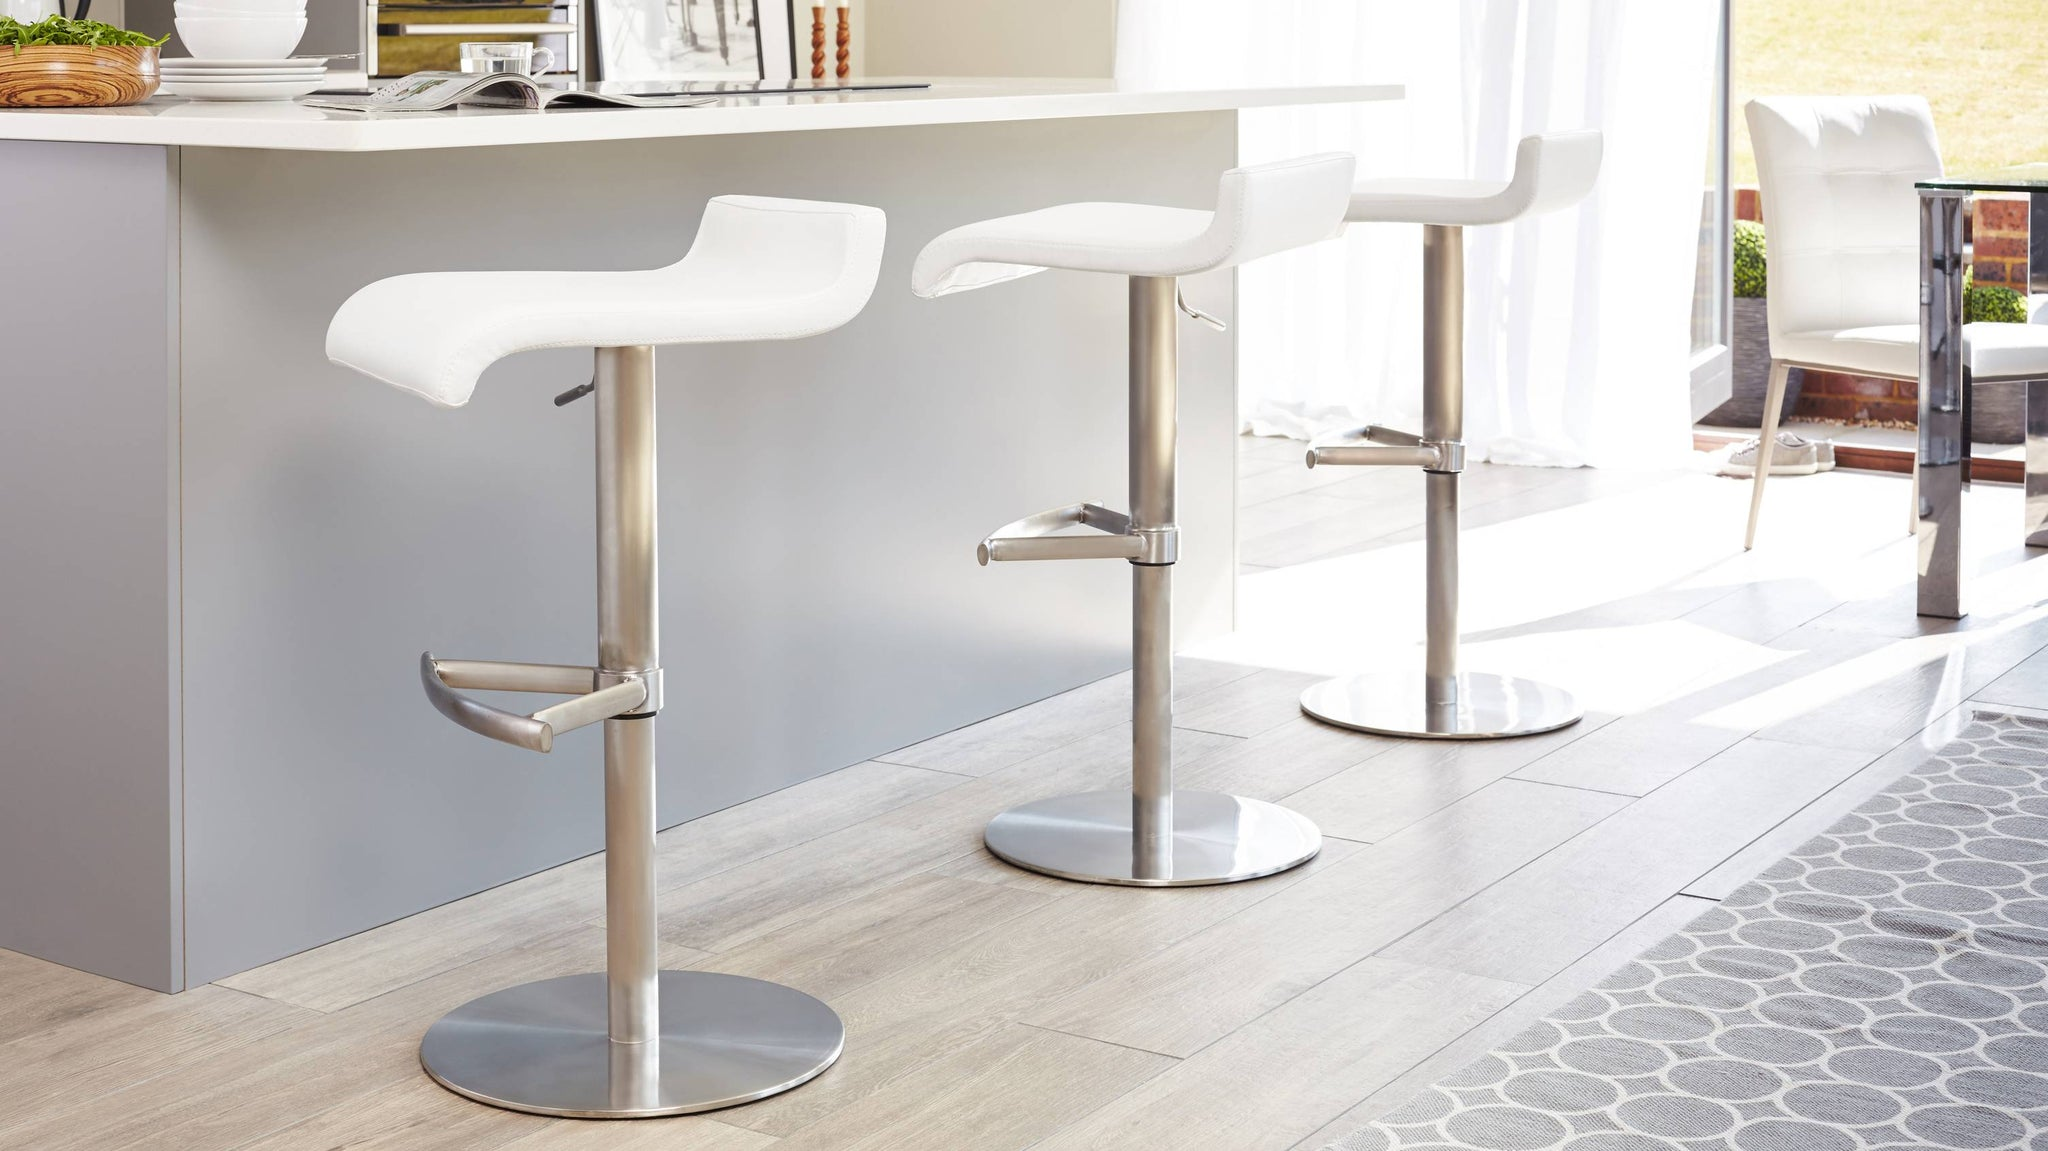 Brushed Metal Pedestal Based Bar Stool with Foot Rest